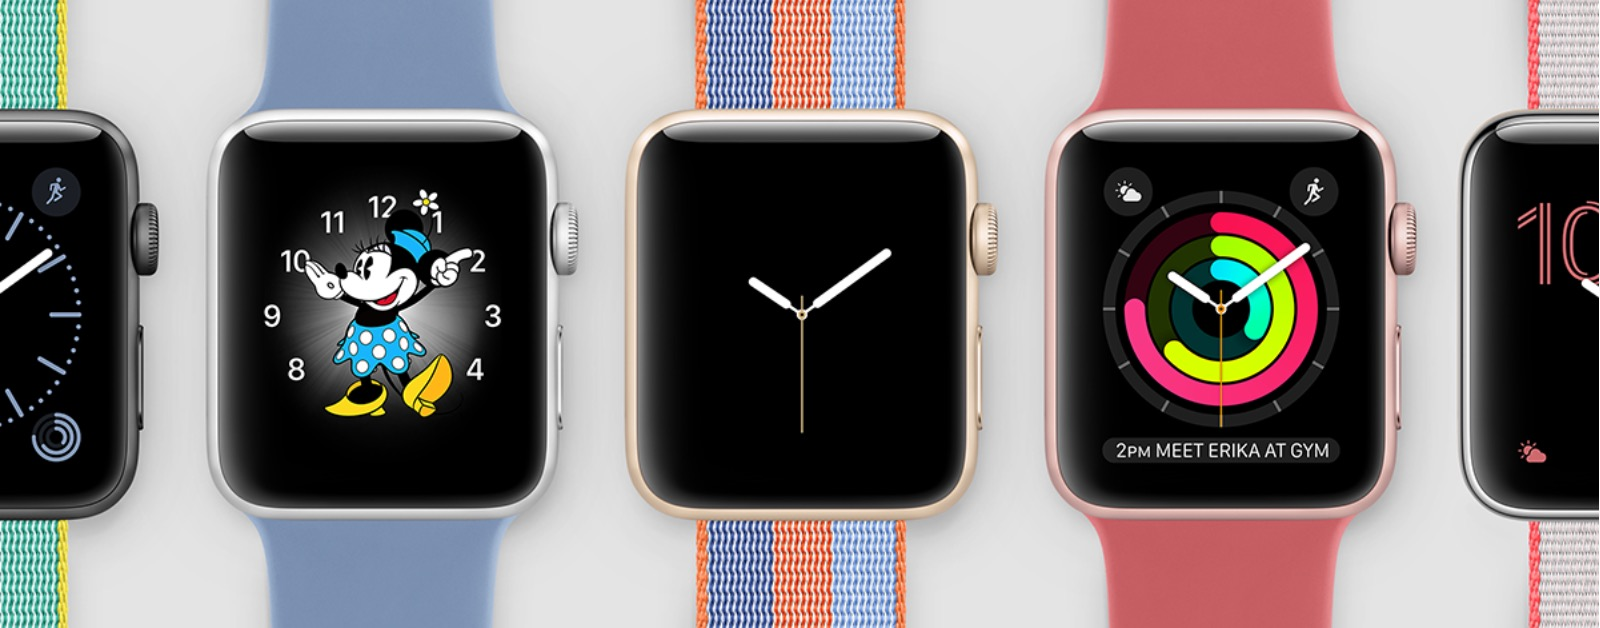 original apple watch models could get replaced with apple. Black Bedroom Furniture Sets. Home Design Ideas